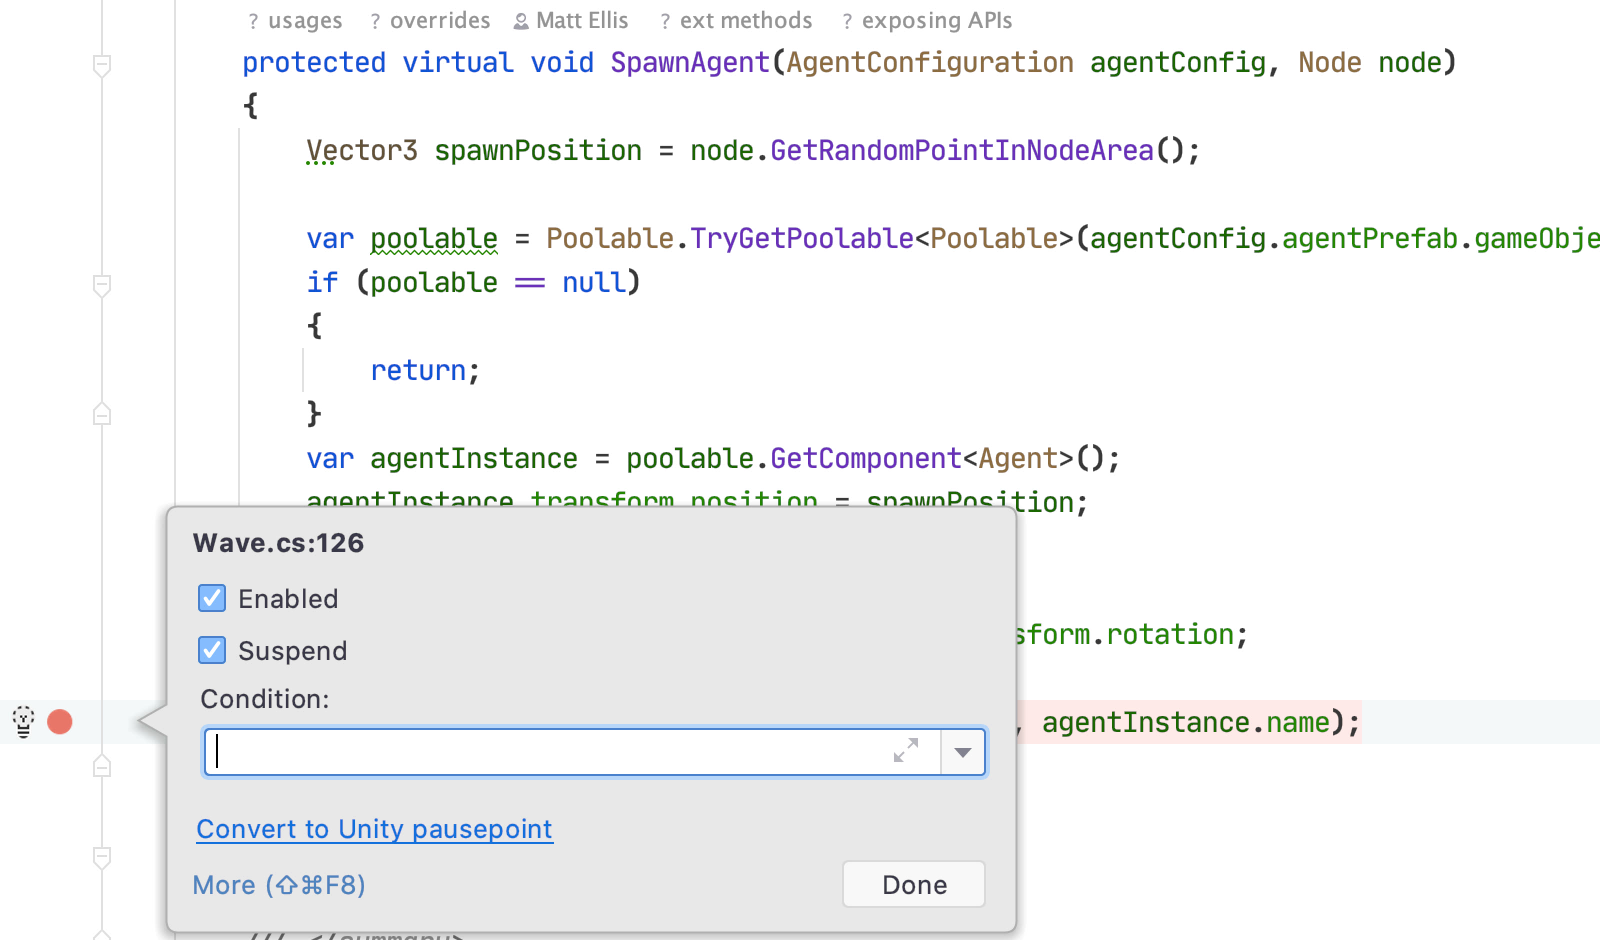 Convert to Unity pausepoint